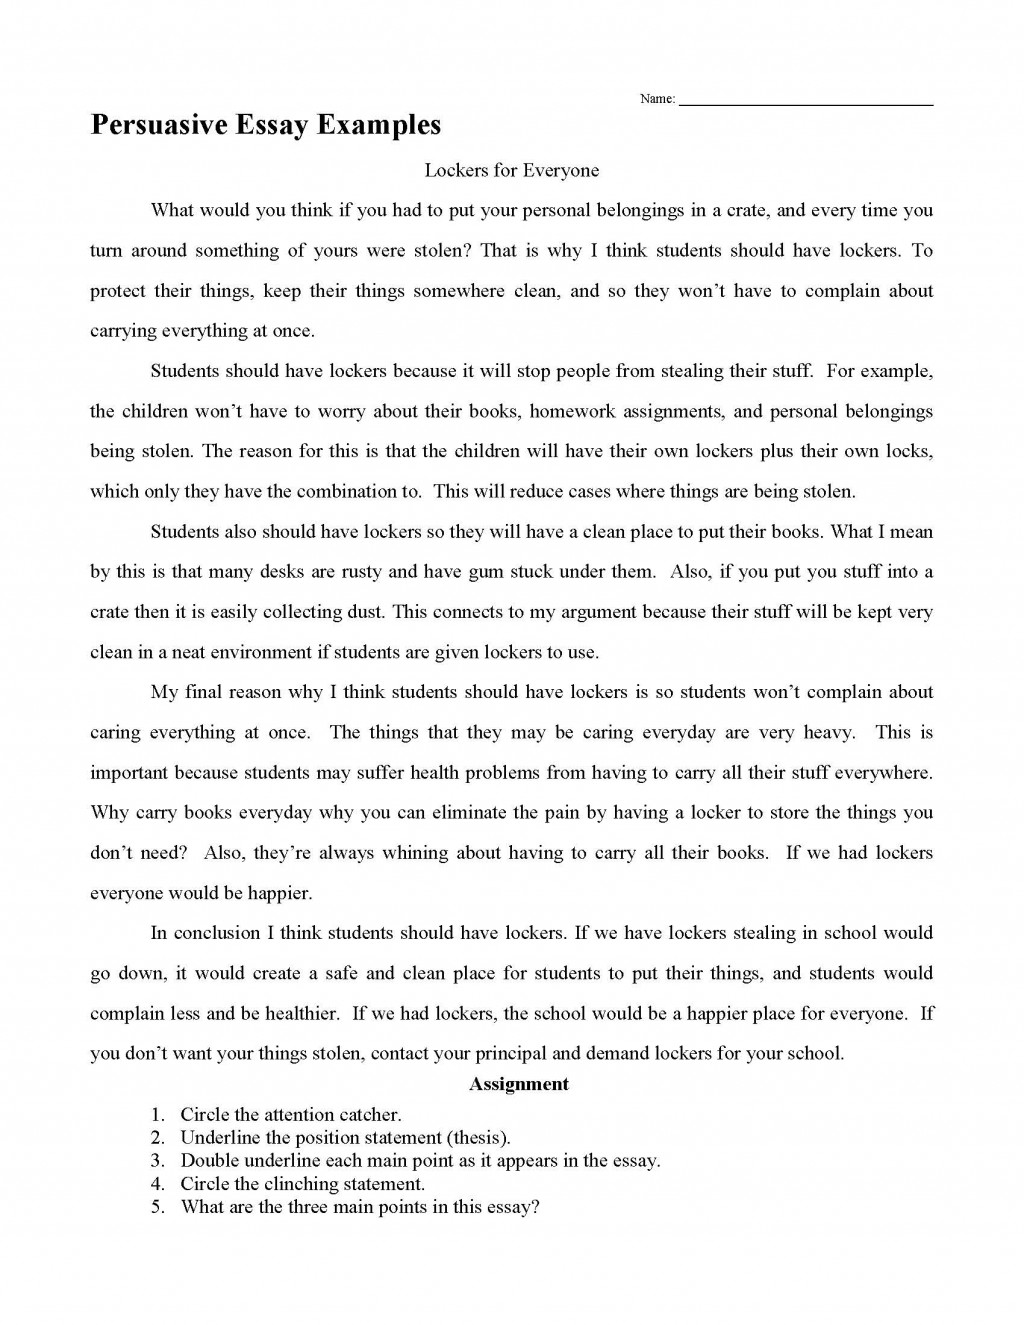 011 Middle School Science Fair Research Paper Template Persuasive Essay Examples Frightening Large